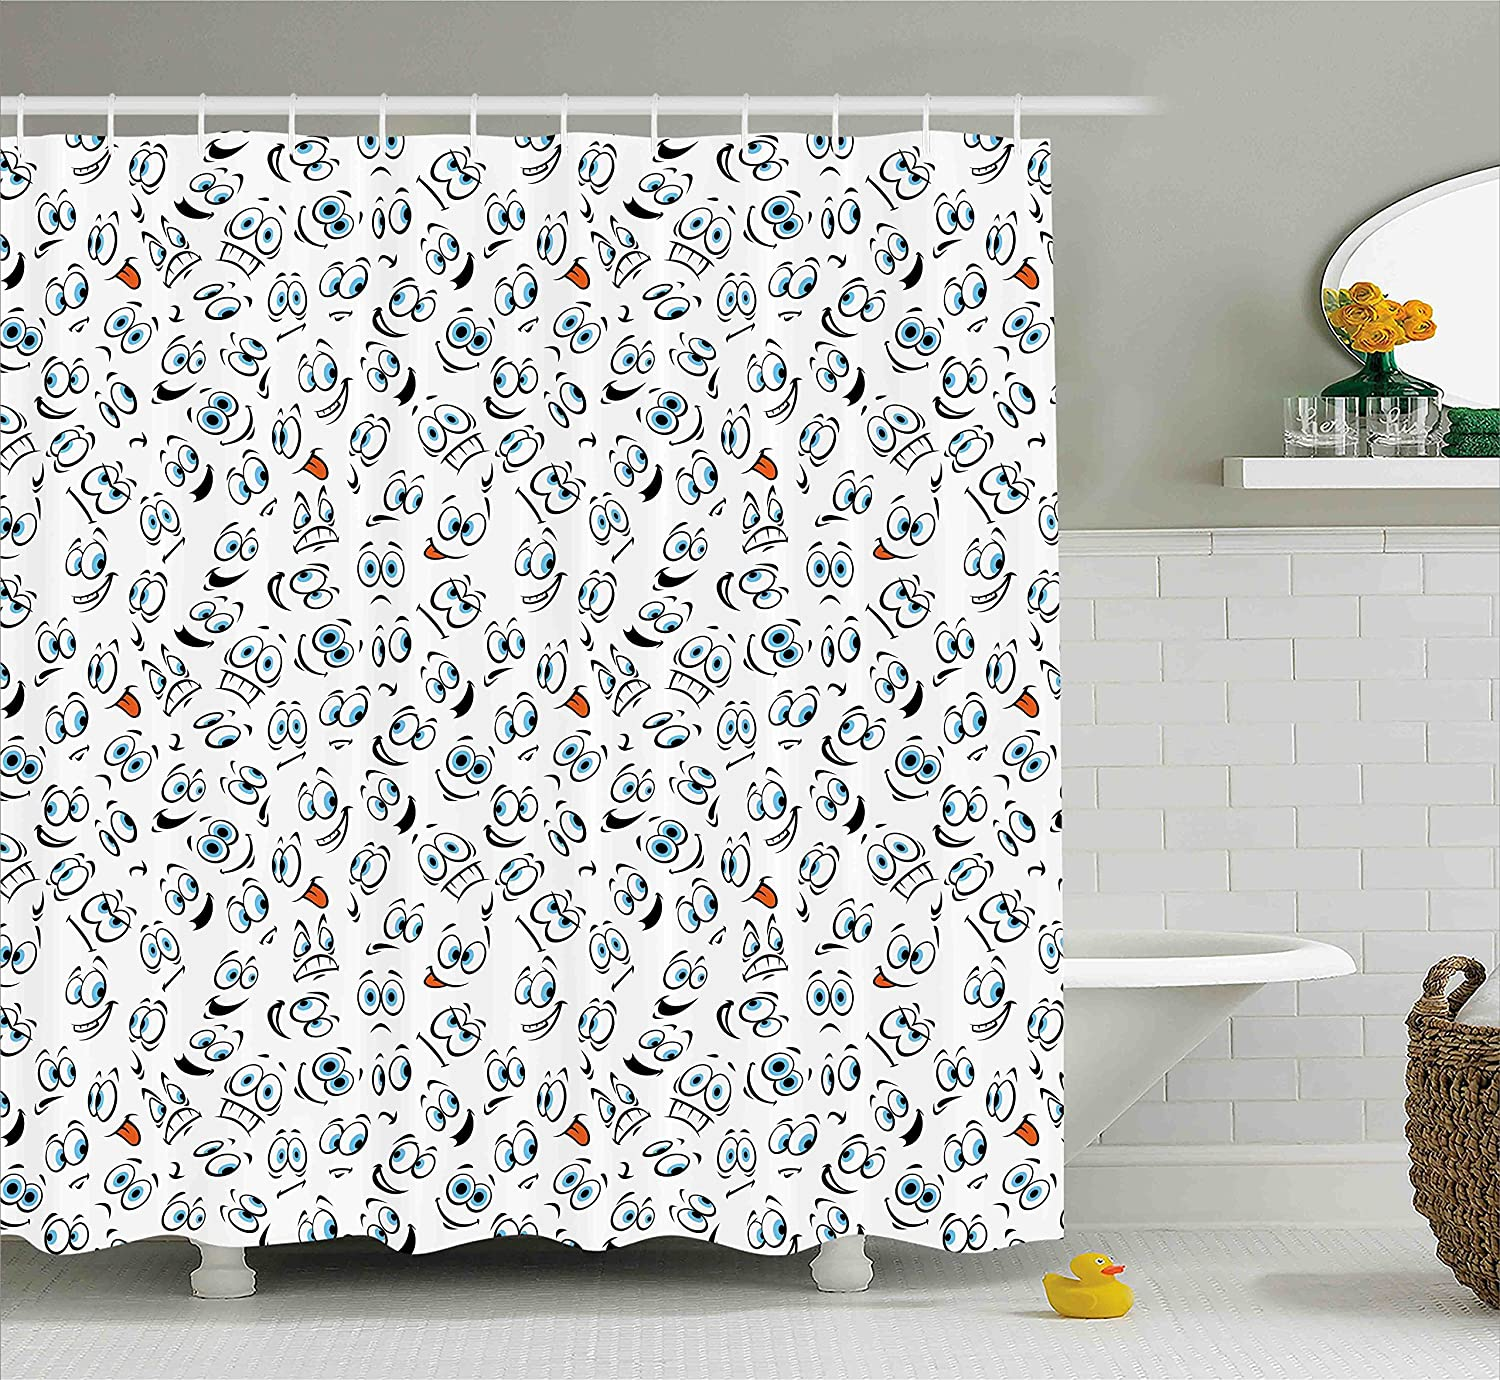 Emojis shower curtains emojis fabric shower curtain liner - Amazon Com Emoji Shower Curtain By Ambesonne Smiley Surprised Sad Hot Happy Sarcastic Angry Mood Faces Expressions Plain Backdrop Print Fabric Bathroom